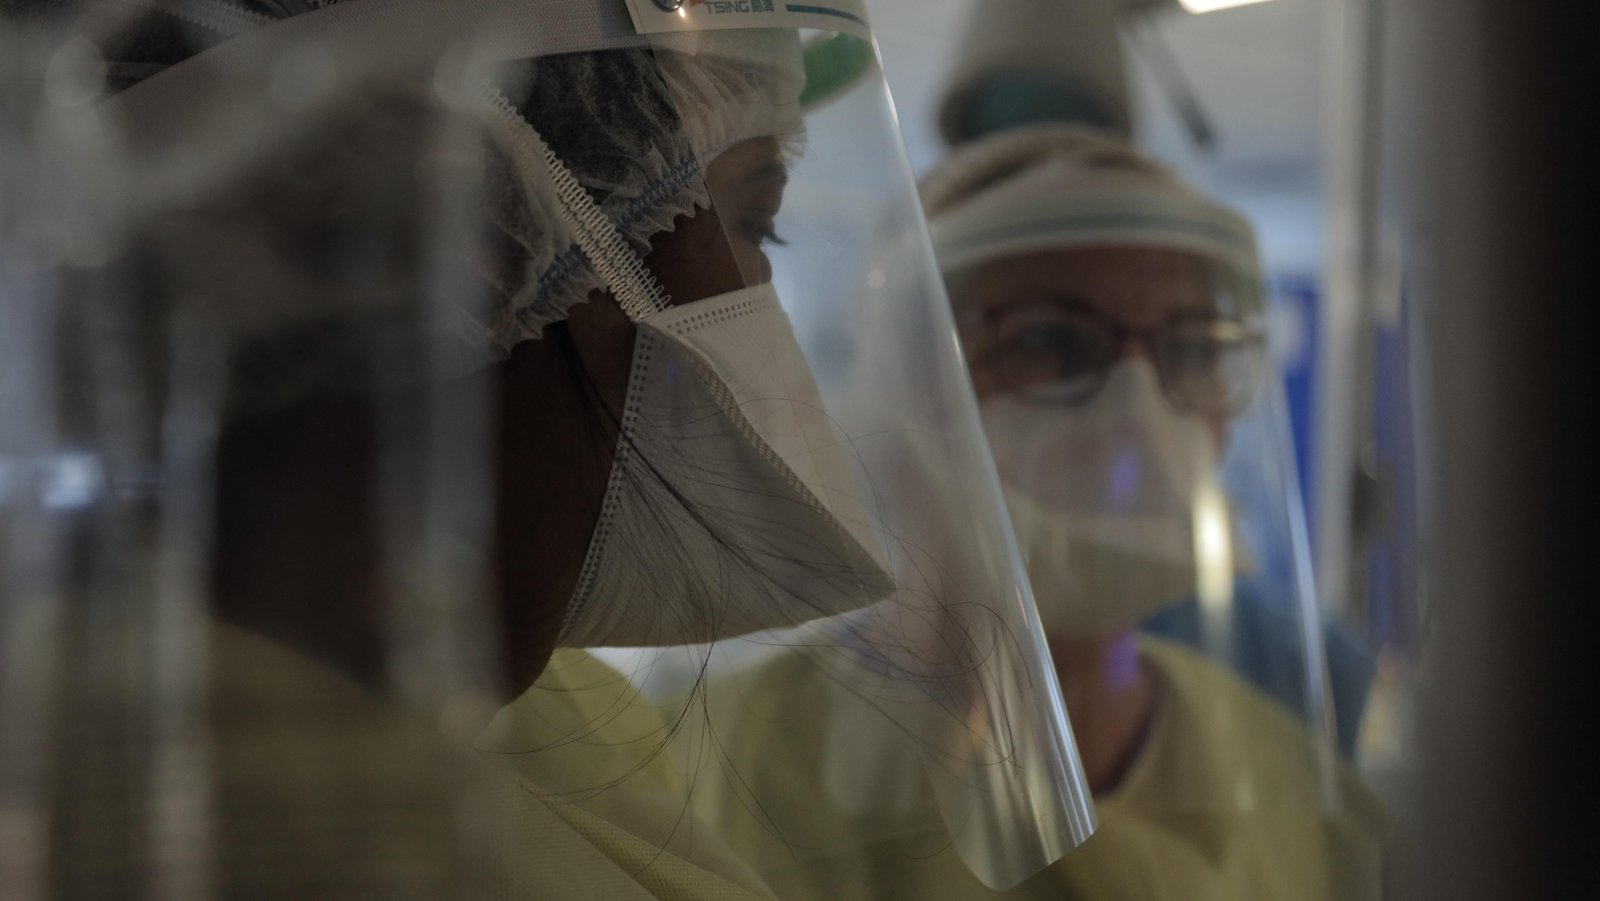 Image - Staff cared for up to 55 patients in the hospital's ICU during the Covid crisis